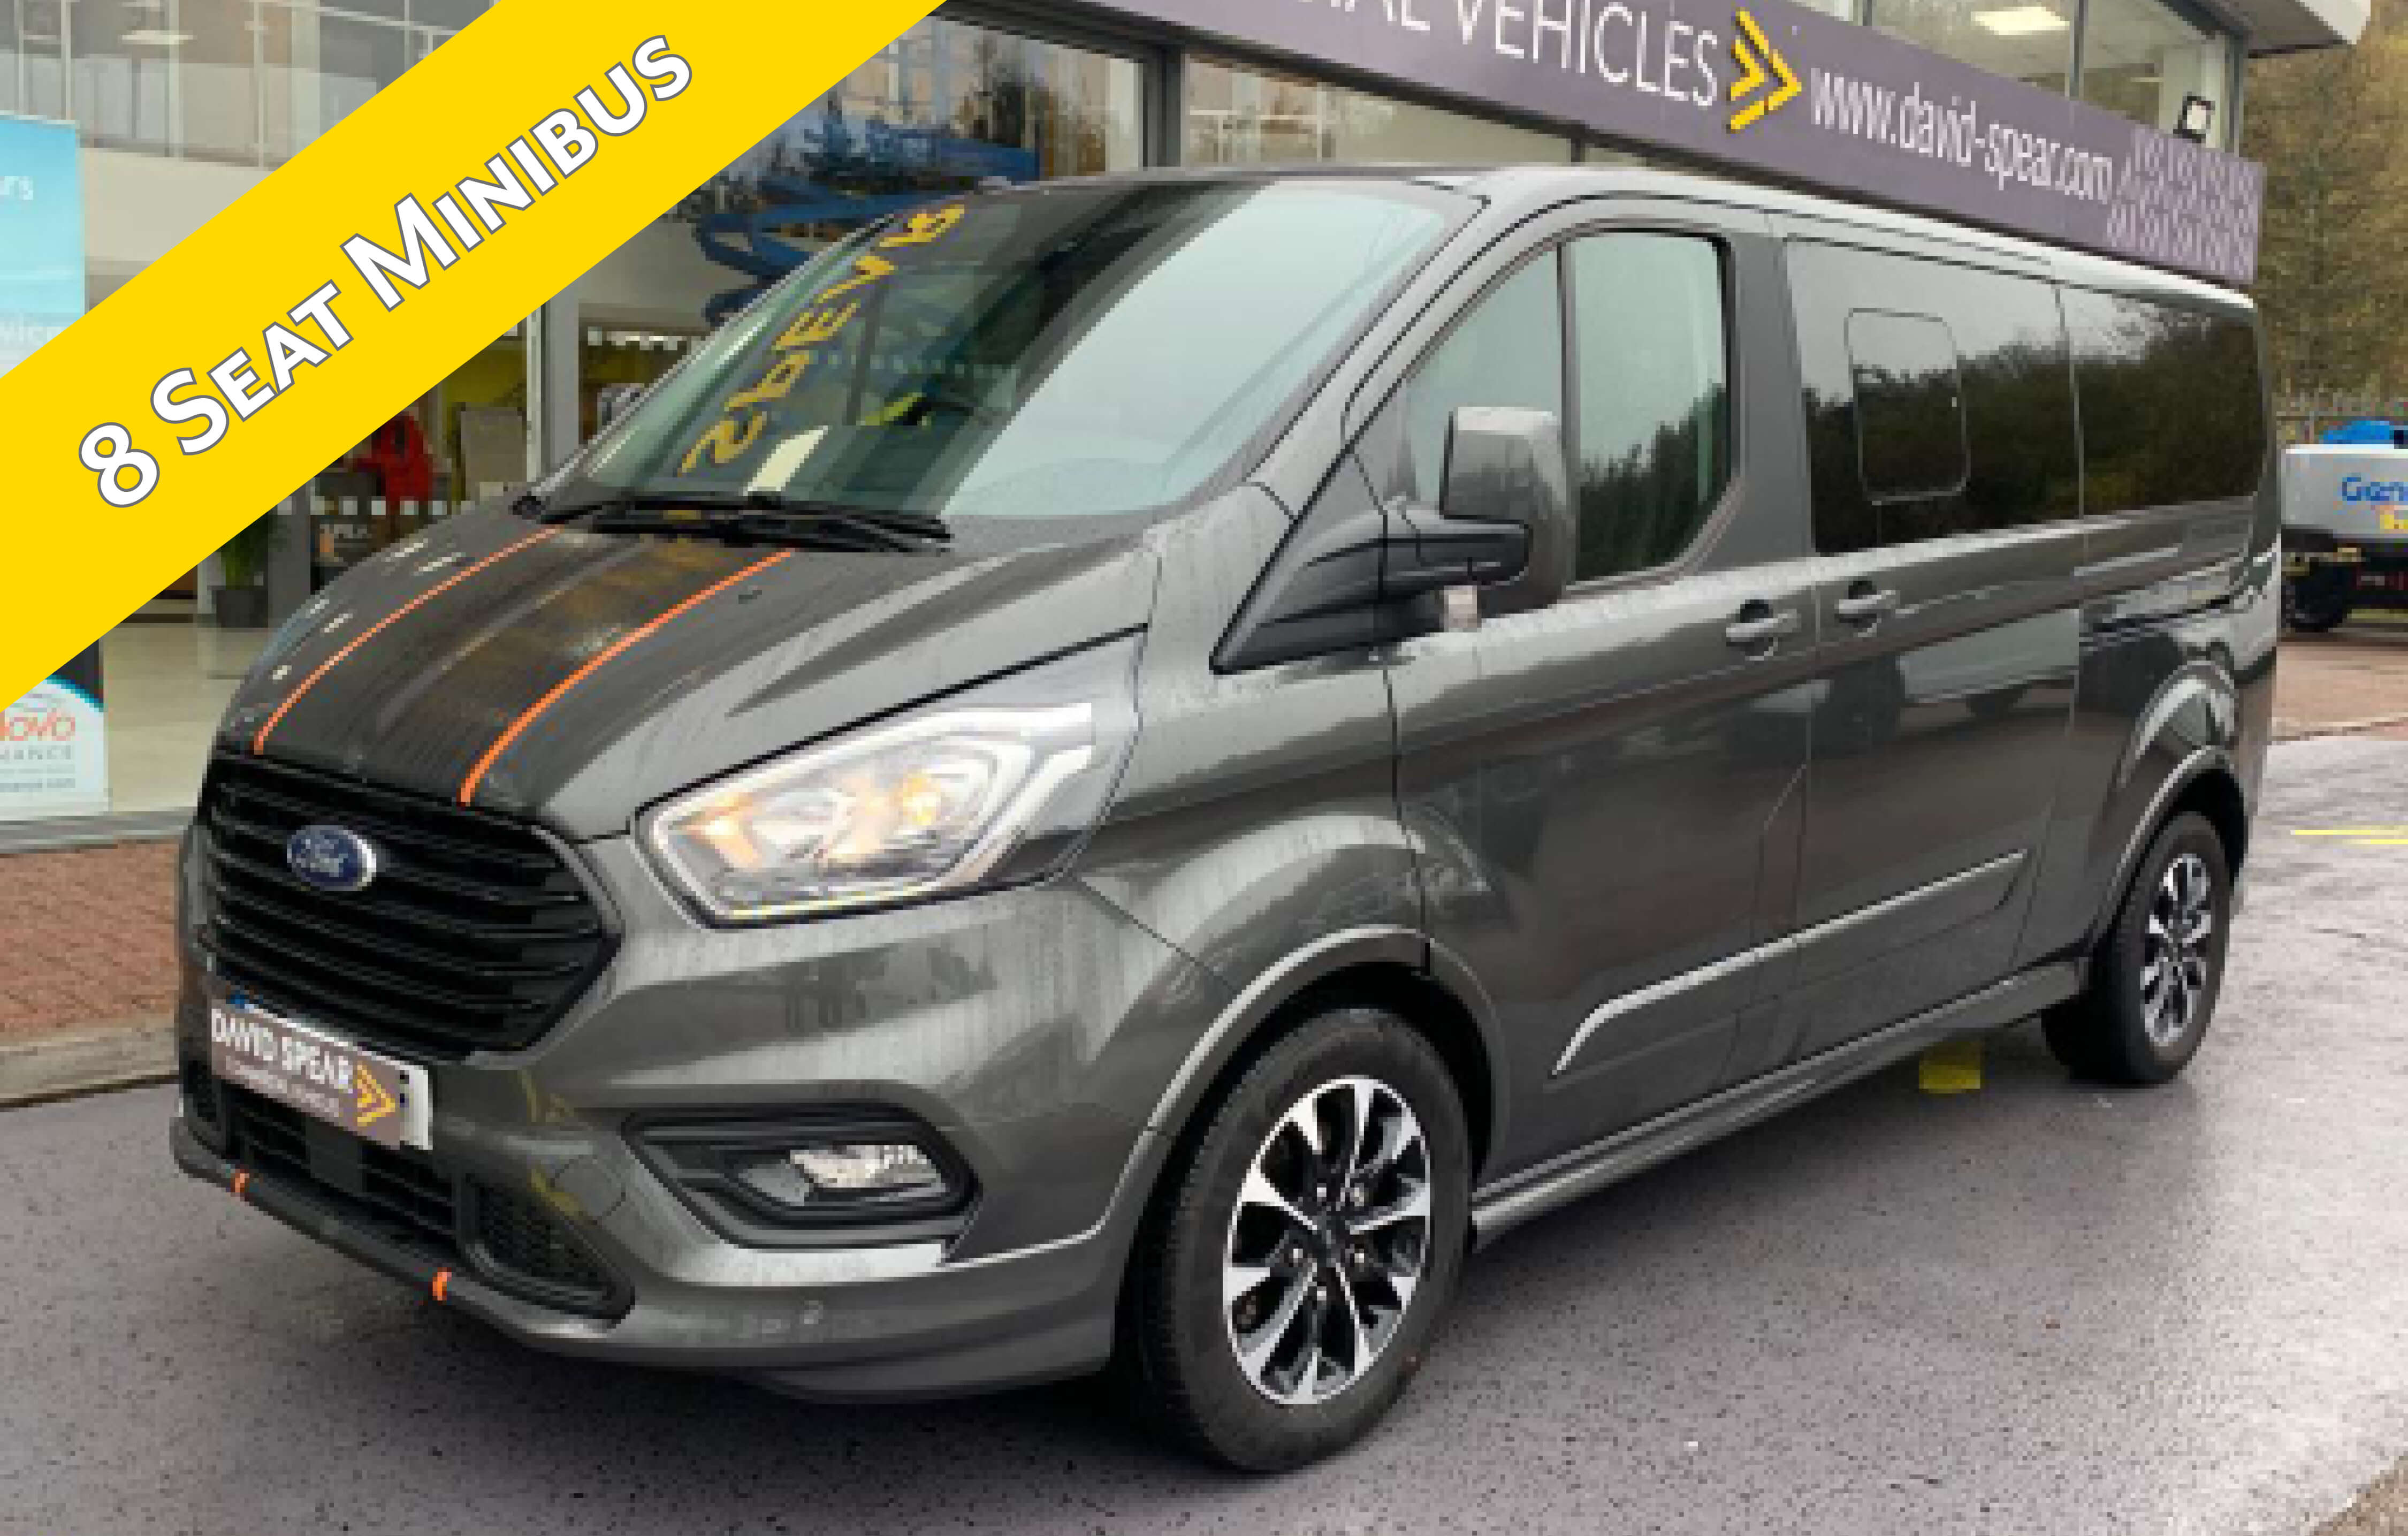 Spear Hire Minibus With Banner (1mb)